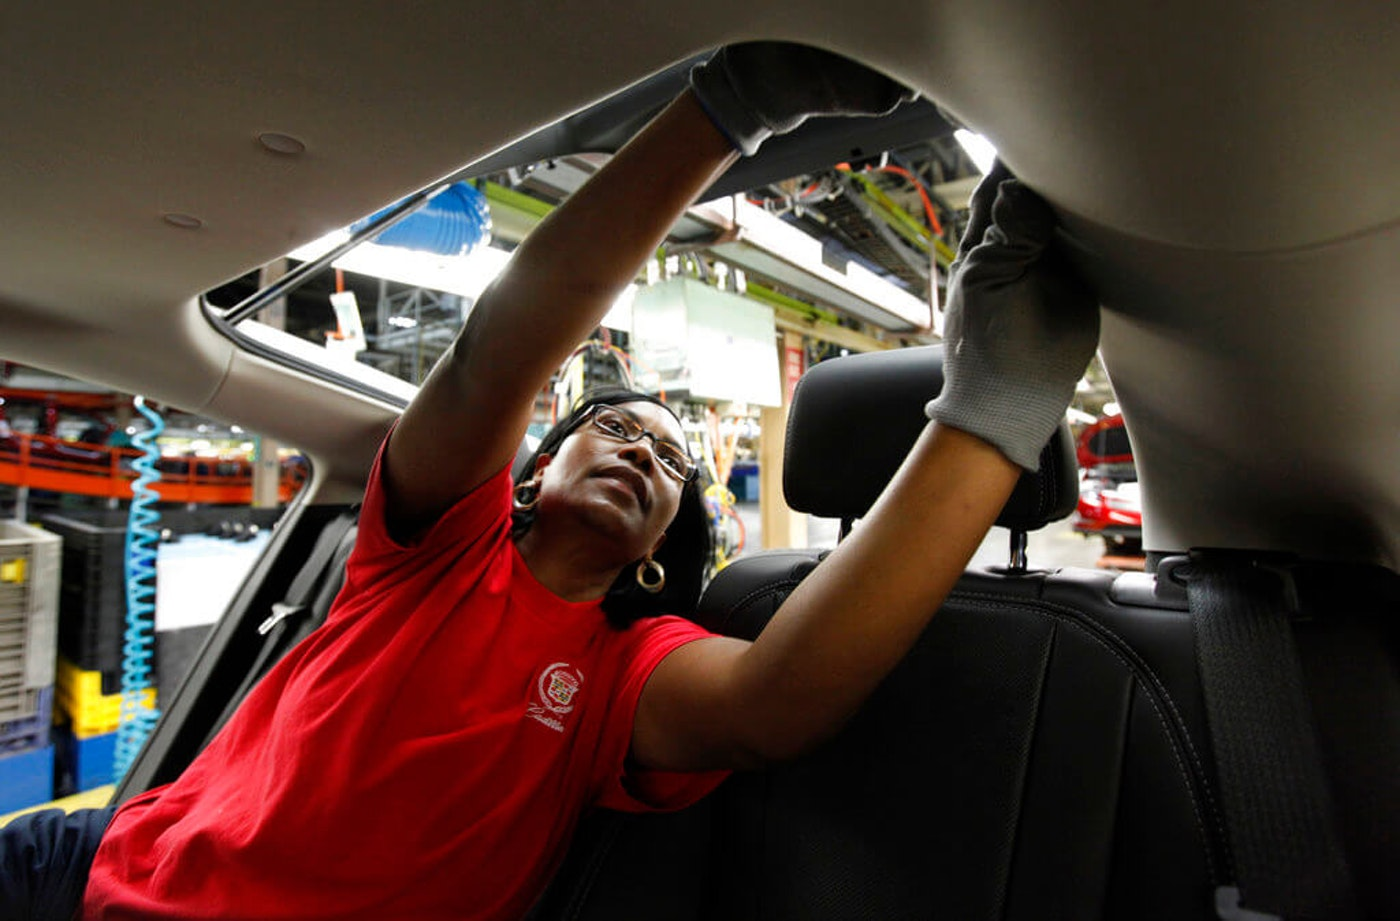 Assembly worker Julaynne Trusel works on a Chevrolet Volt at the General Motors Hamtramck Assembly plant in Hamtramck. (AP)